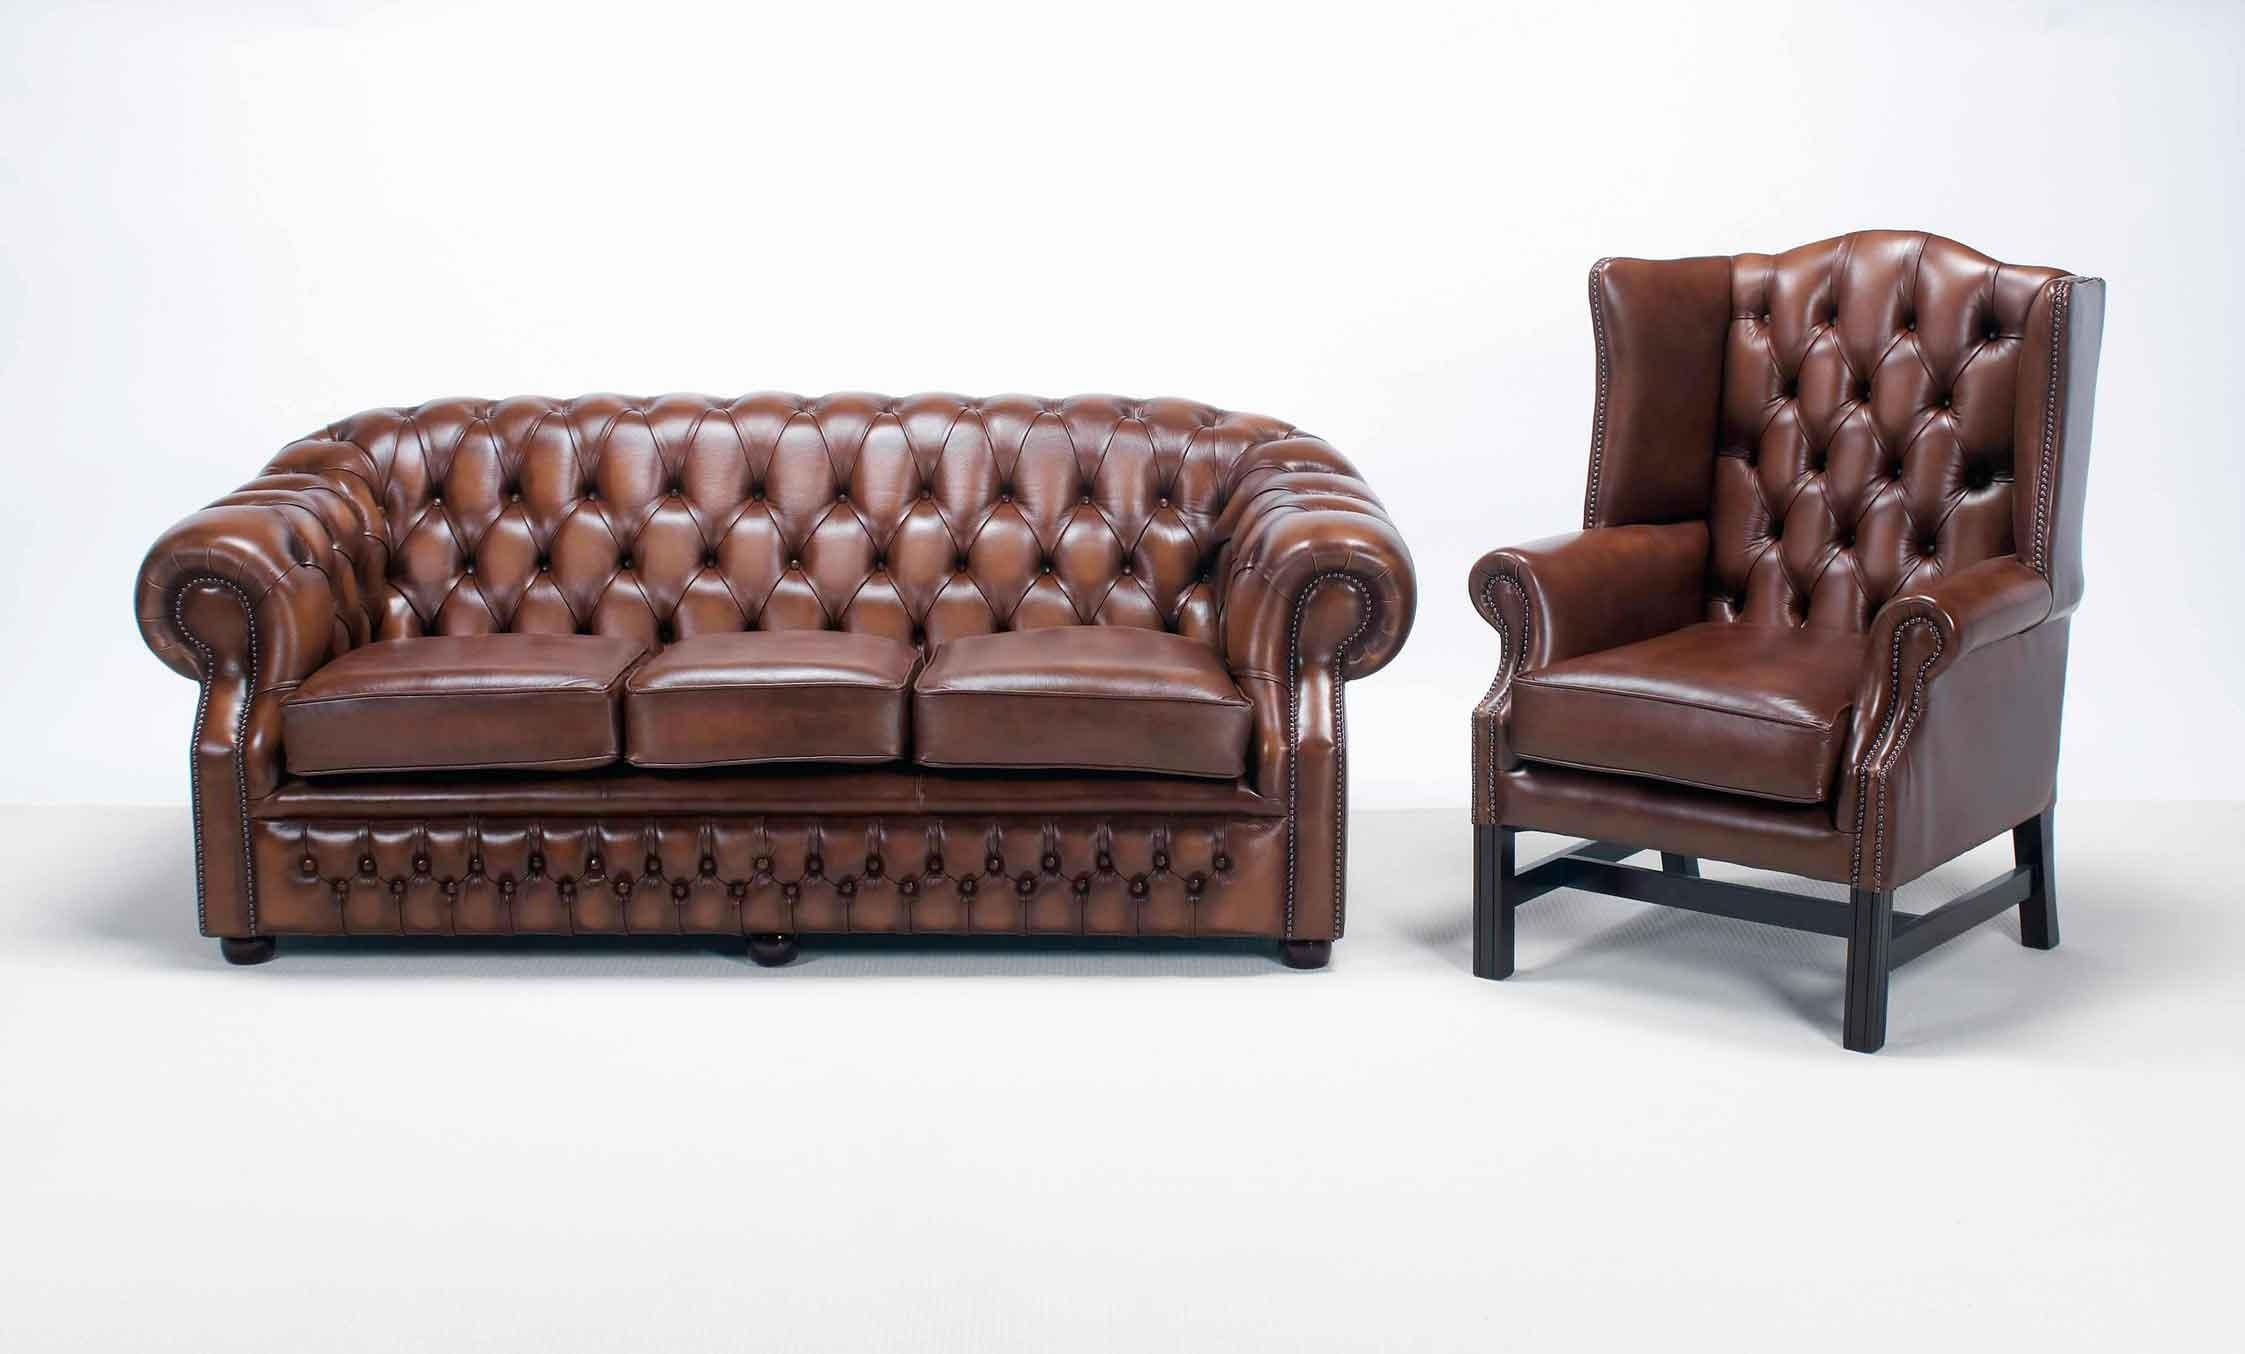 Furniture: Enchanting Chesterfield Couch For Living Room Furniture Pertaining To Brown Leather Tufted Sofas (View 15 of 20)